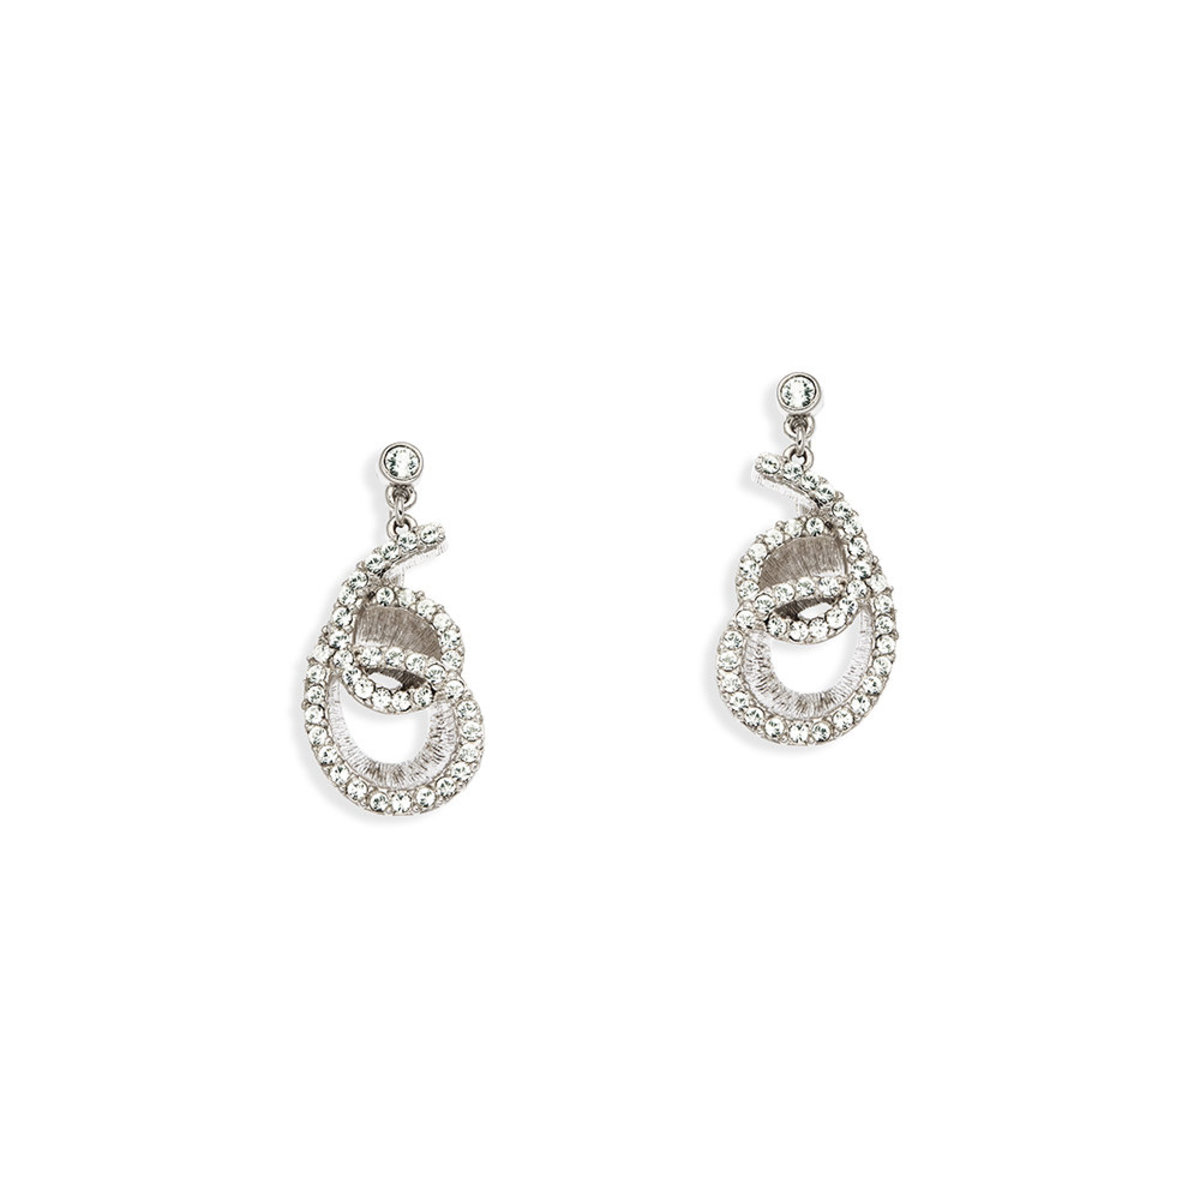 The Wave: platnium plating, Swarovski crystal pierced earrings